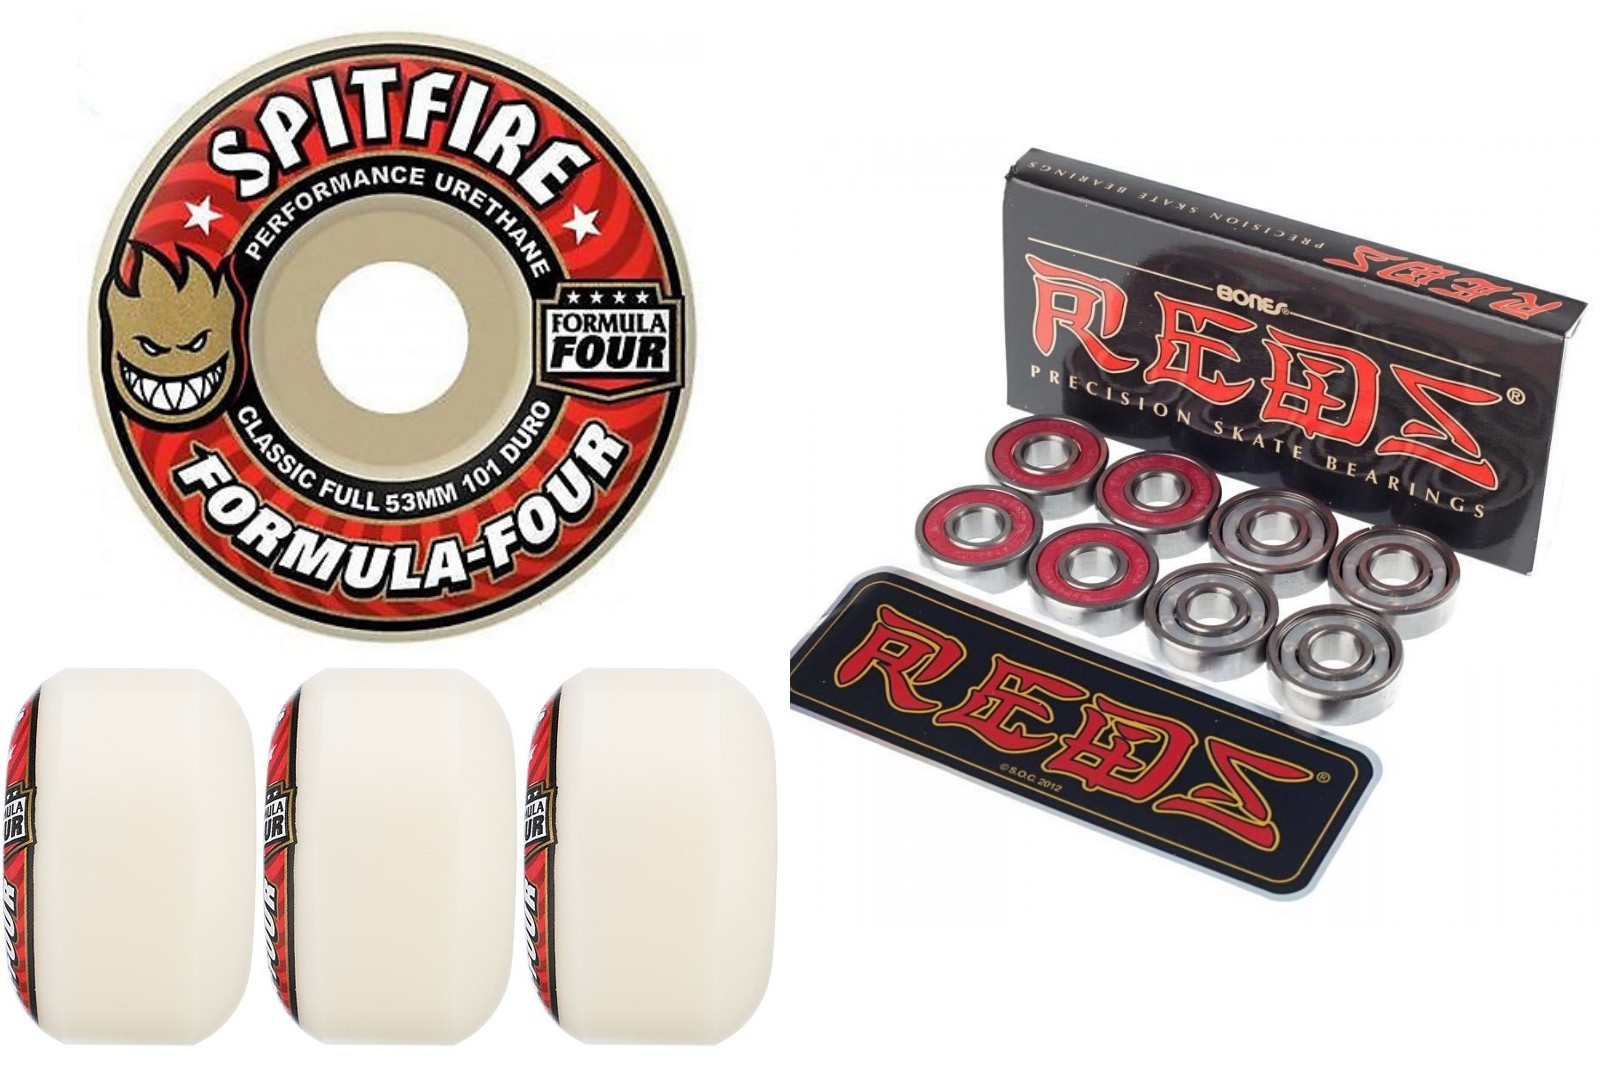 Spitfire Skateboard Wheels F4 Formula 4 Four Red 53mm 101d Classic Full with Bones Reds Bearings new FREE POST